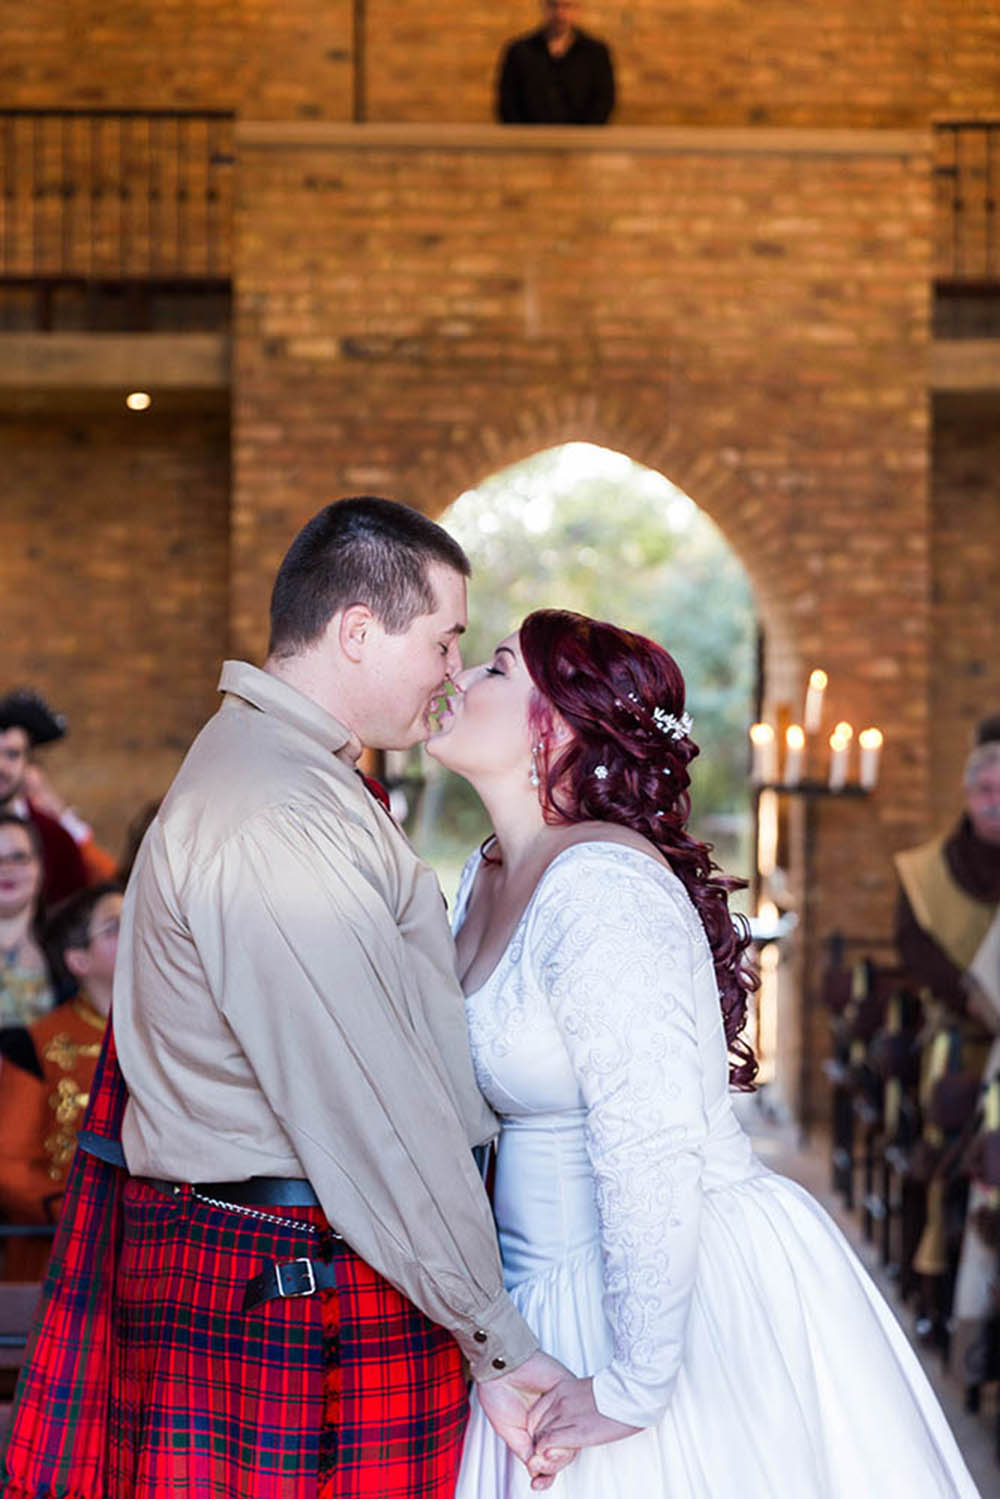 medieval-themed-wedding-medieval-wedding-dgr-photography-castle-wedding-59